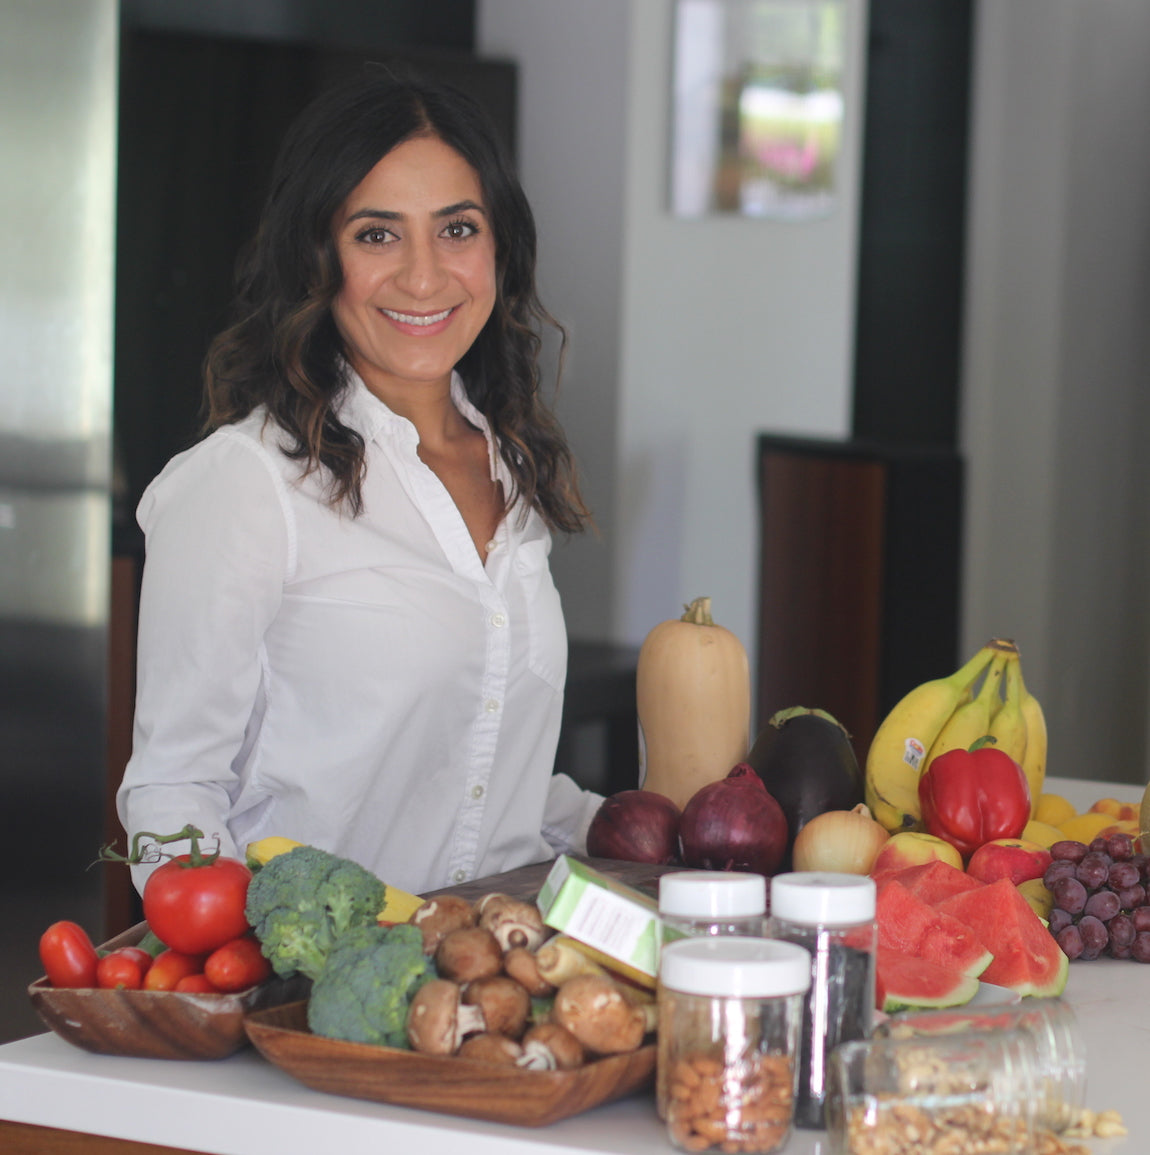 People Spotlight: Q+A With Preventative Nutrition Coach Melody Moradi